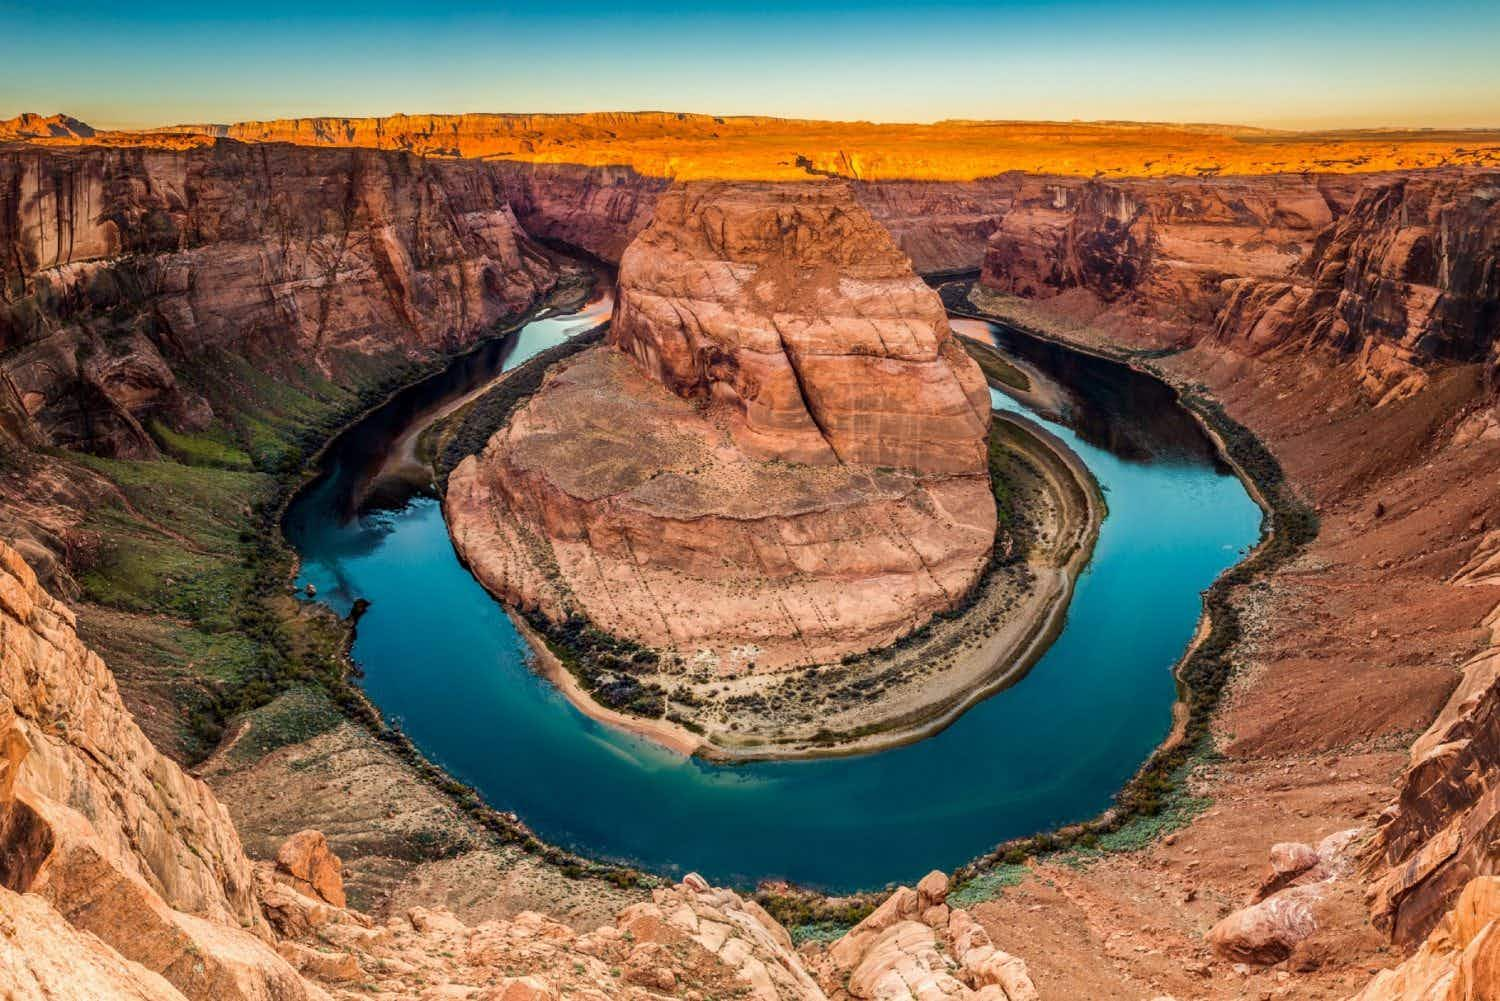 Arizona's Insta-famous Horseshoe Bend is now charging an entry fee